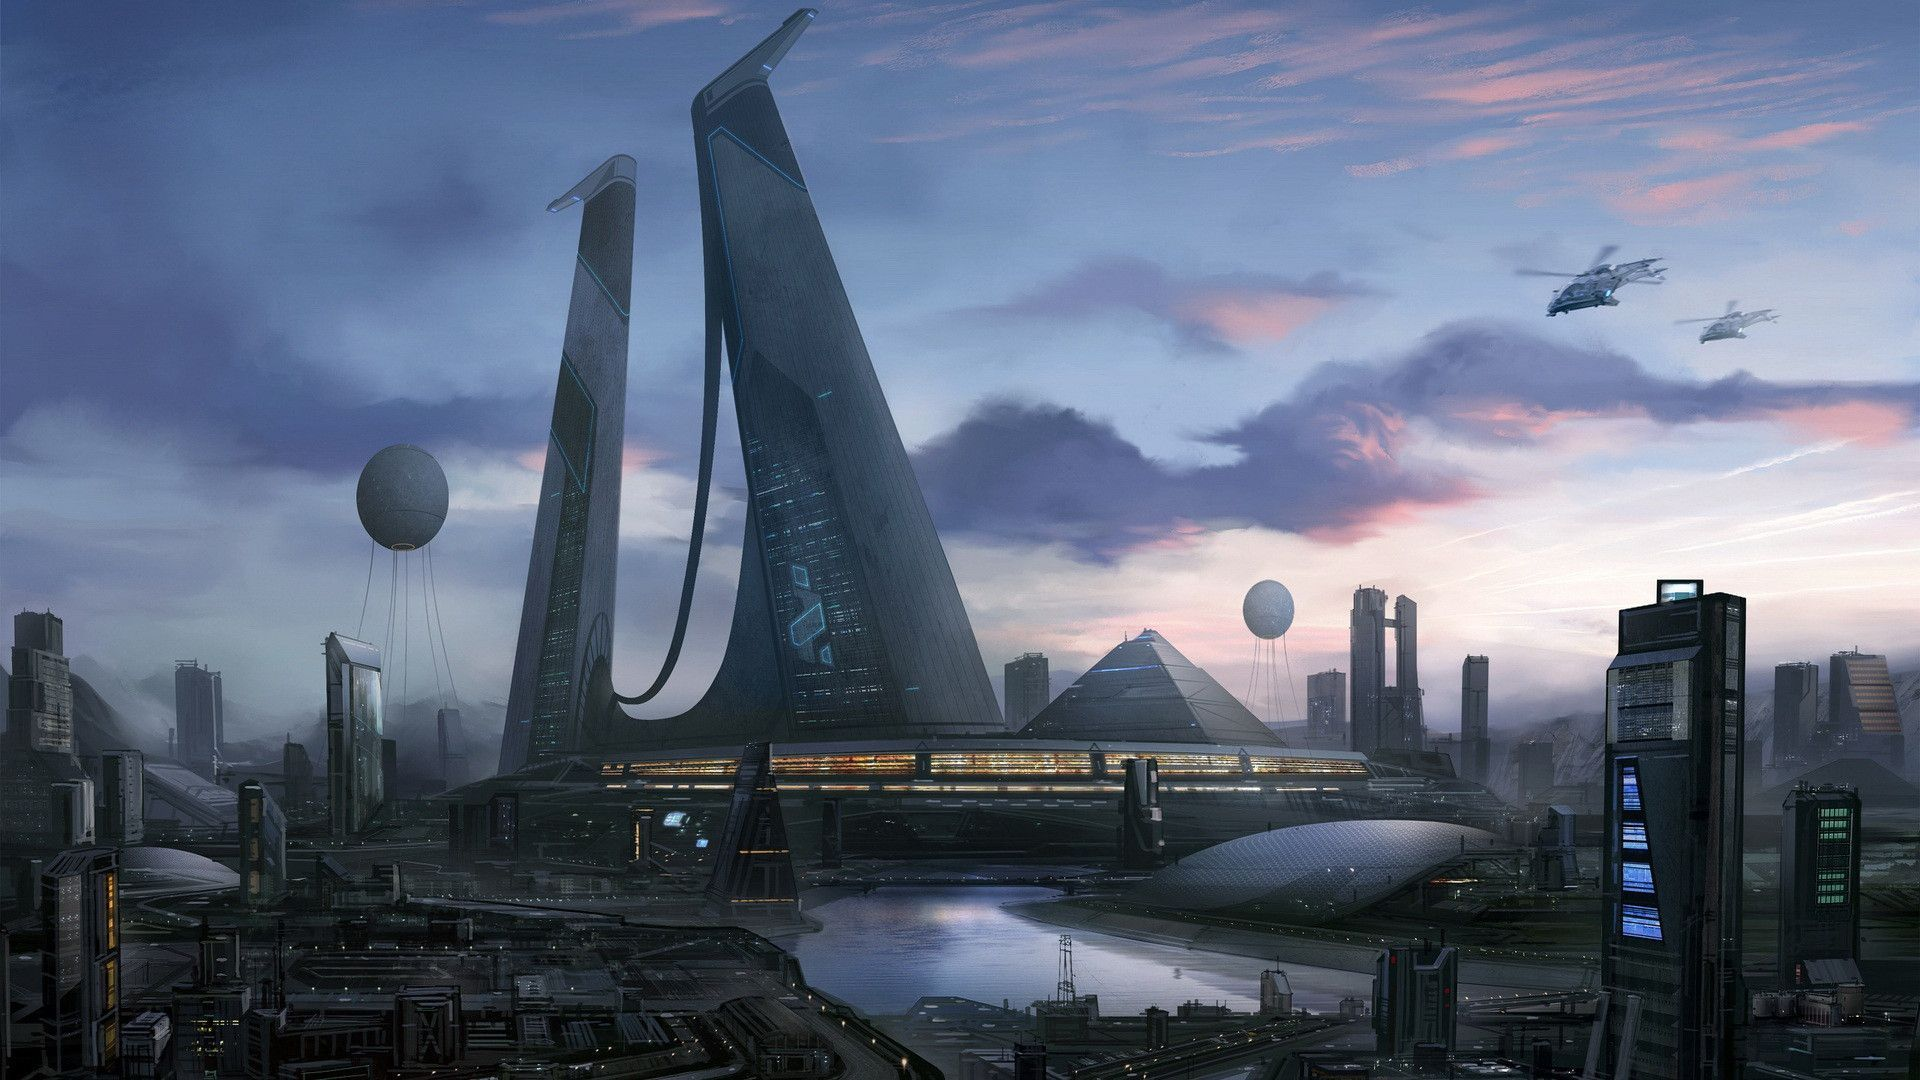 Wallpapers For Future City Wallpaper Futuristic City Sci Fi Wallpaper Sci Fi City